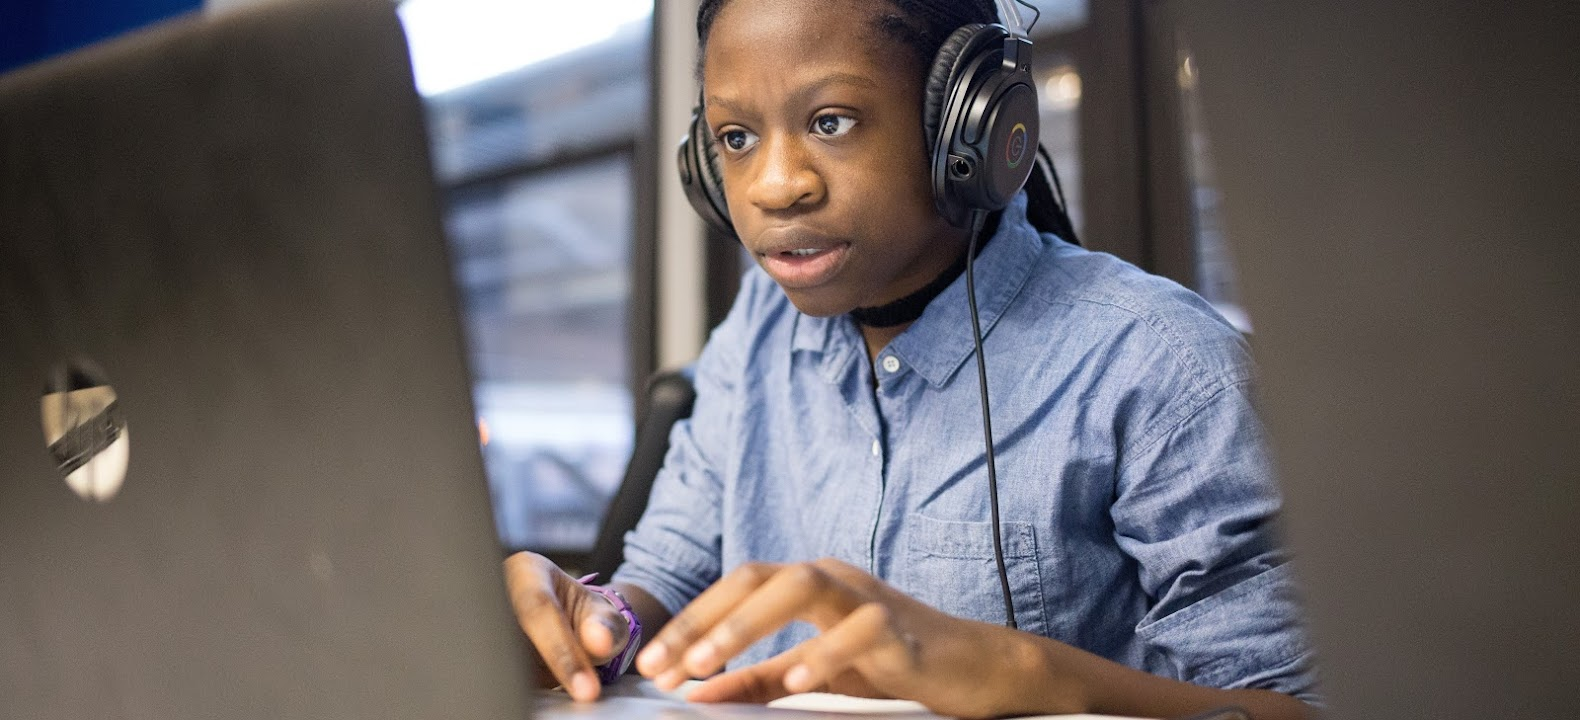 Black female student engages with technology.